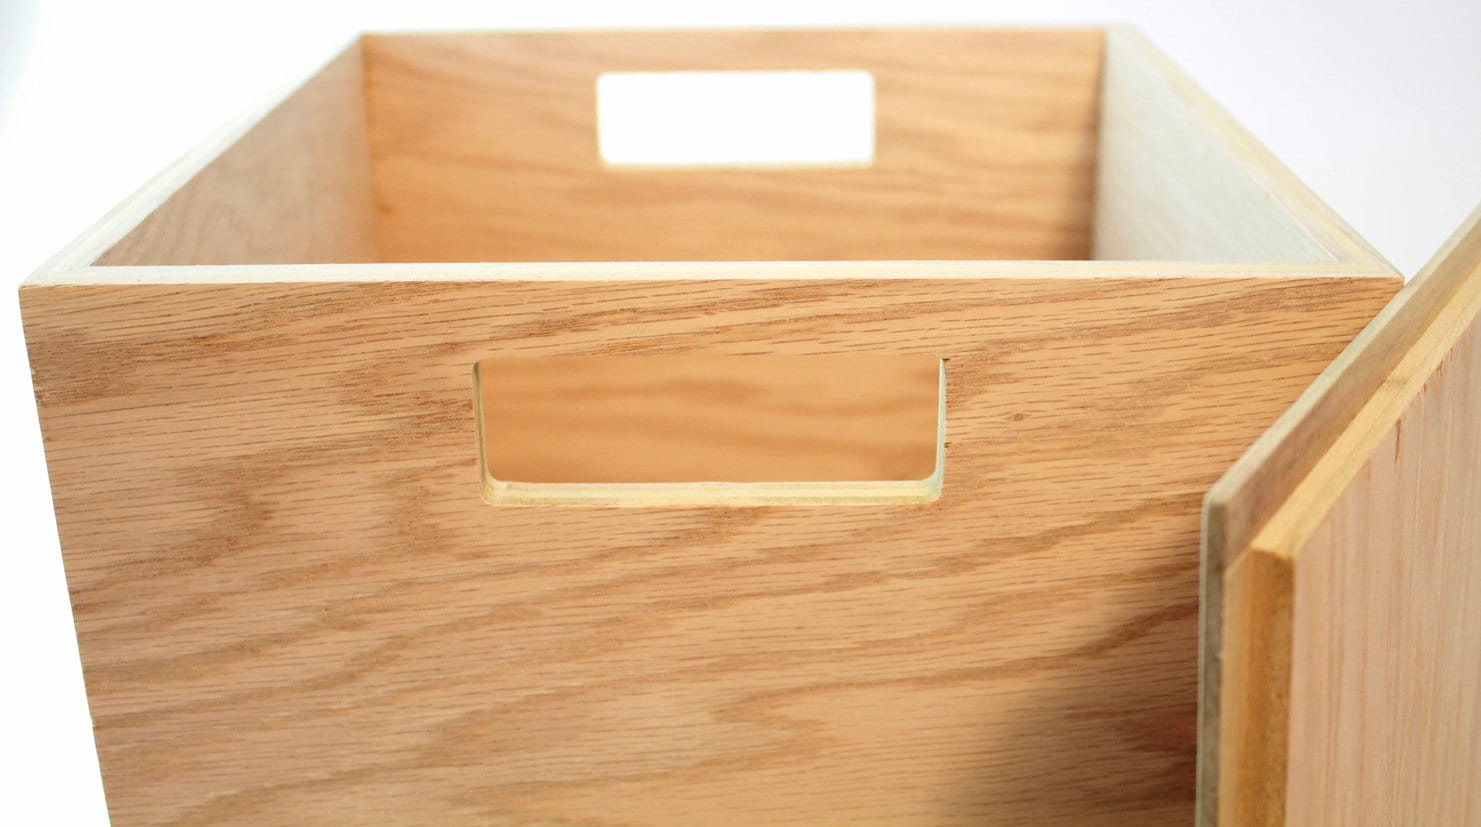 Wood Box With Lid And Handles Playroom Box Baby Toy Storage Etsy